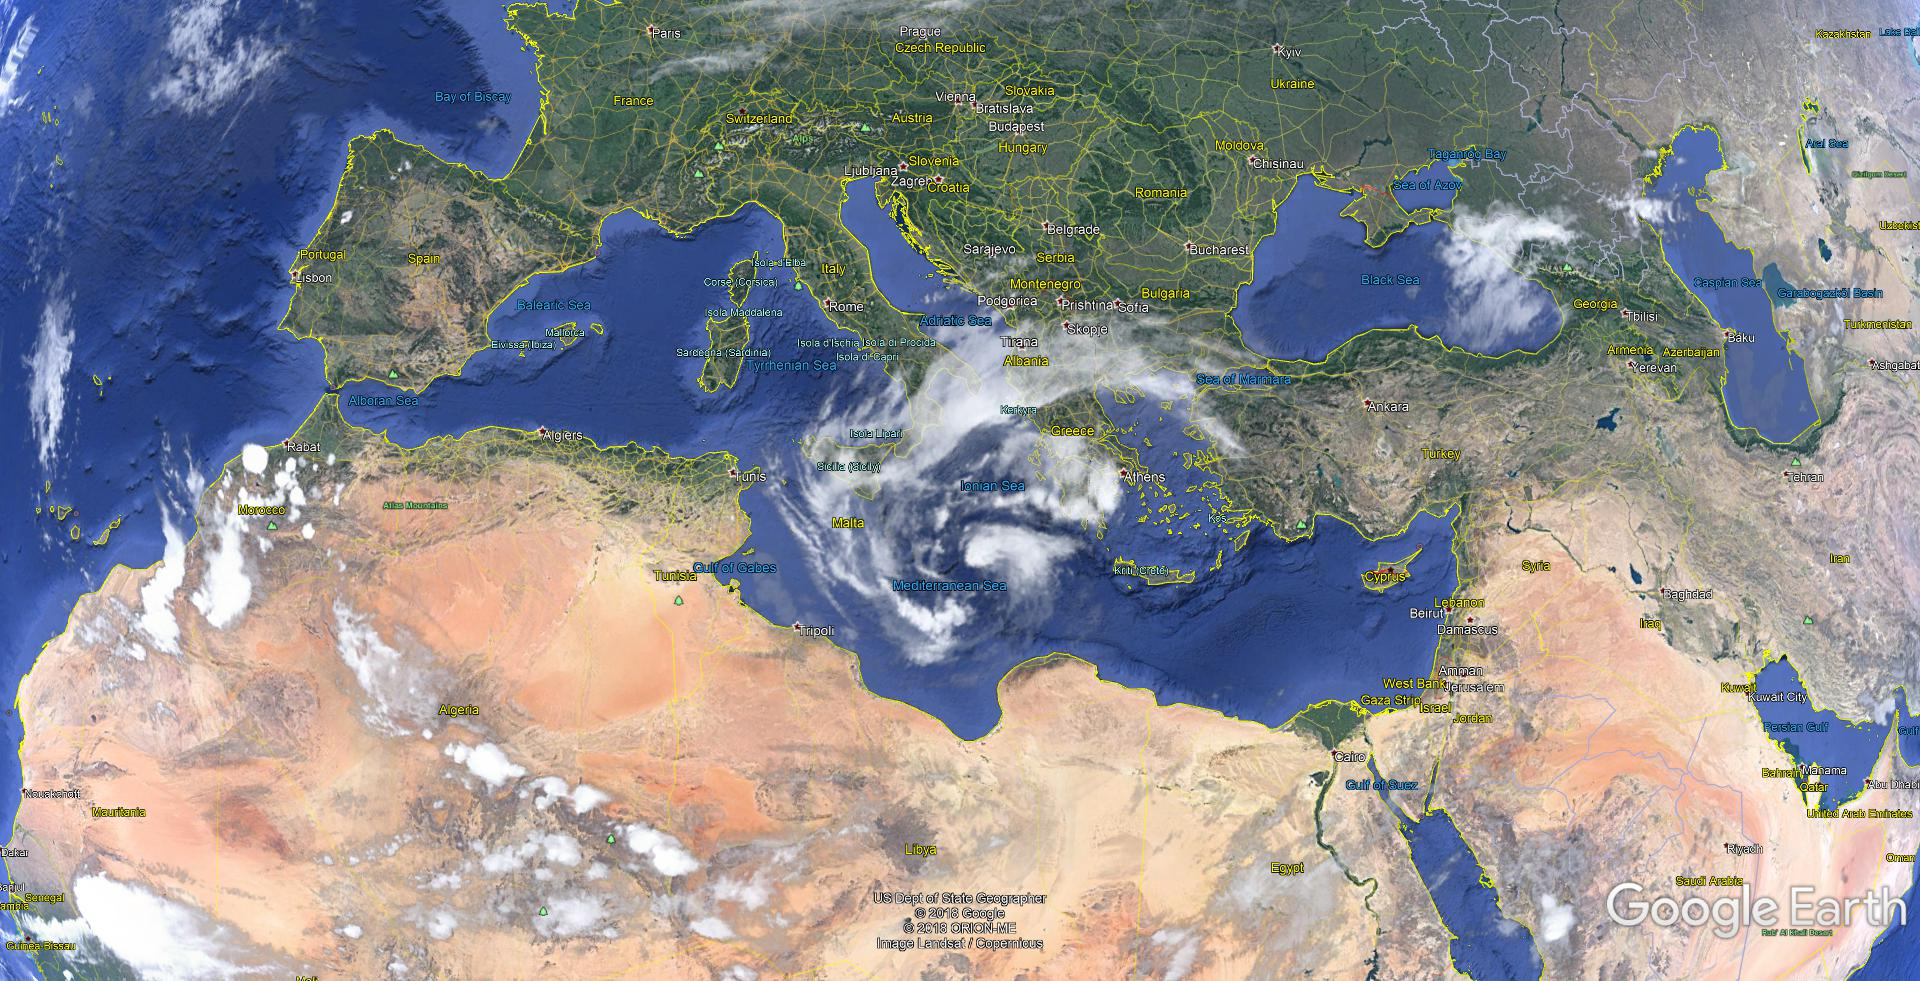 An uncommon storm called a 'Medicane' is headed for Greece